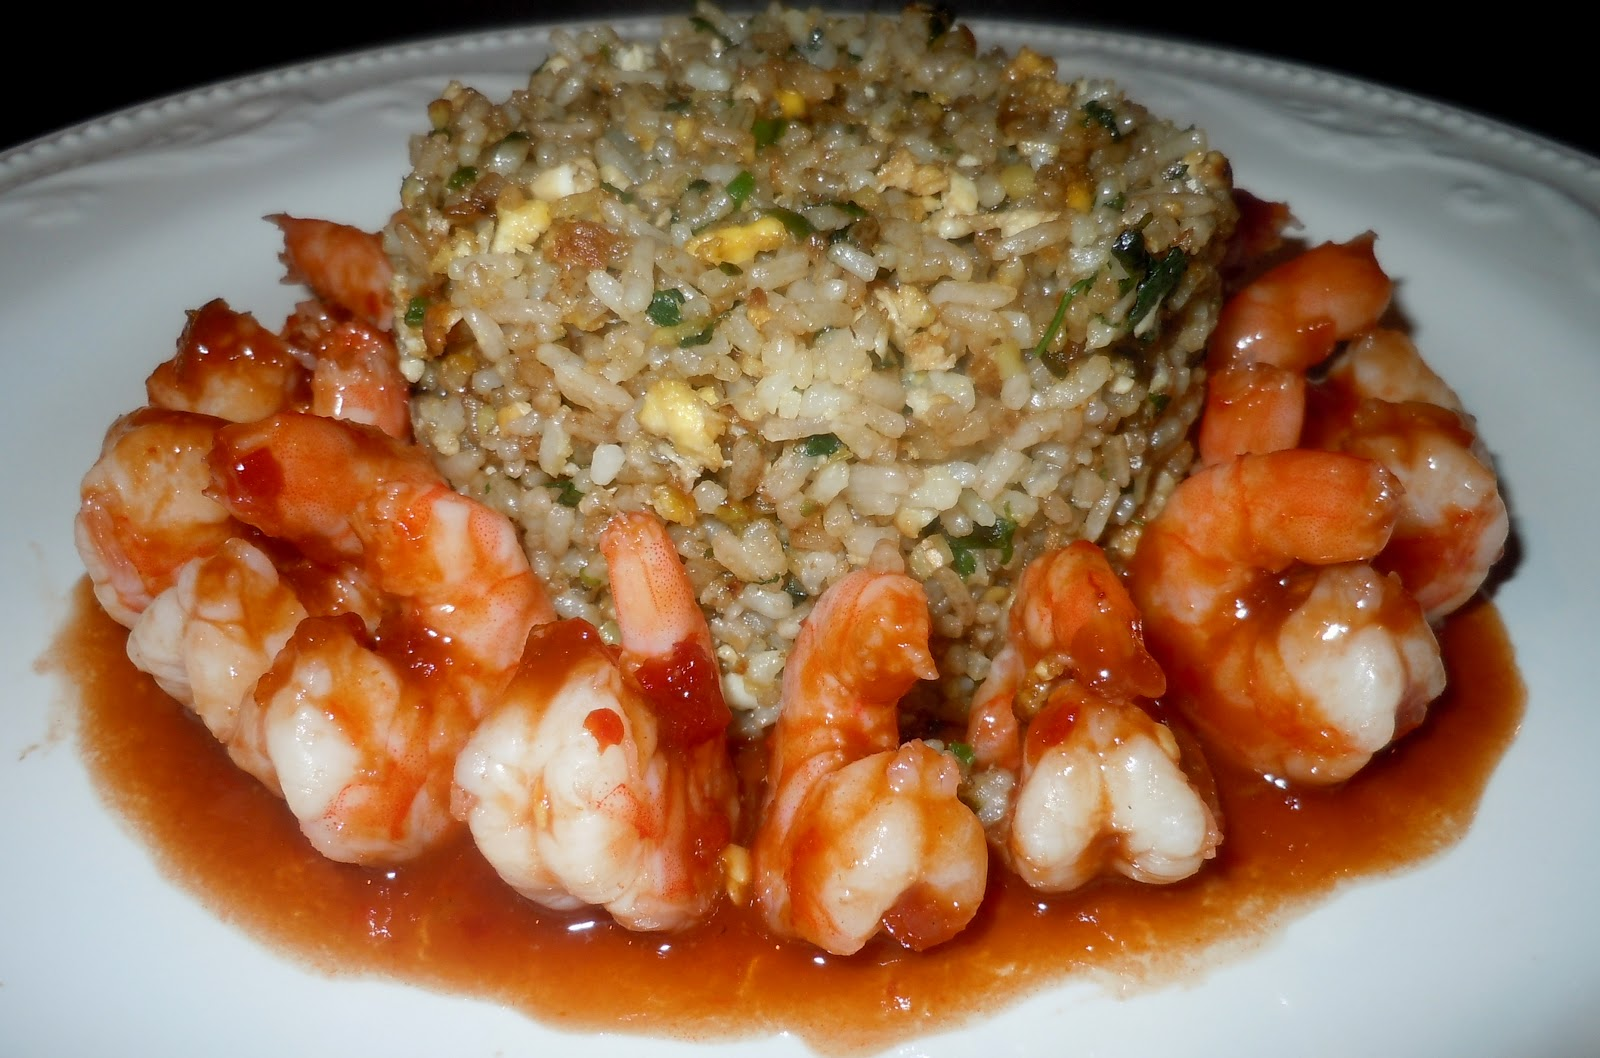 ... shrimp fried rice kimchi and shrimp fried rice five spice shrimp fried